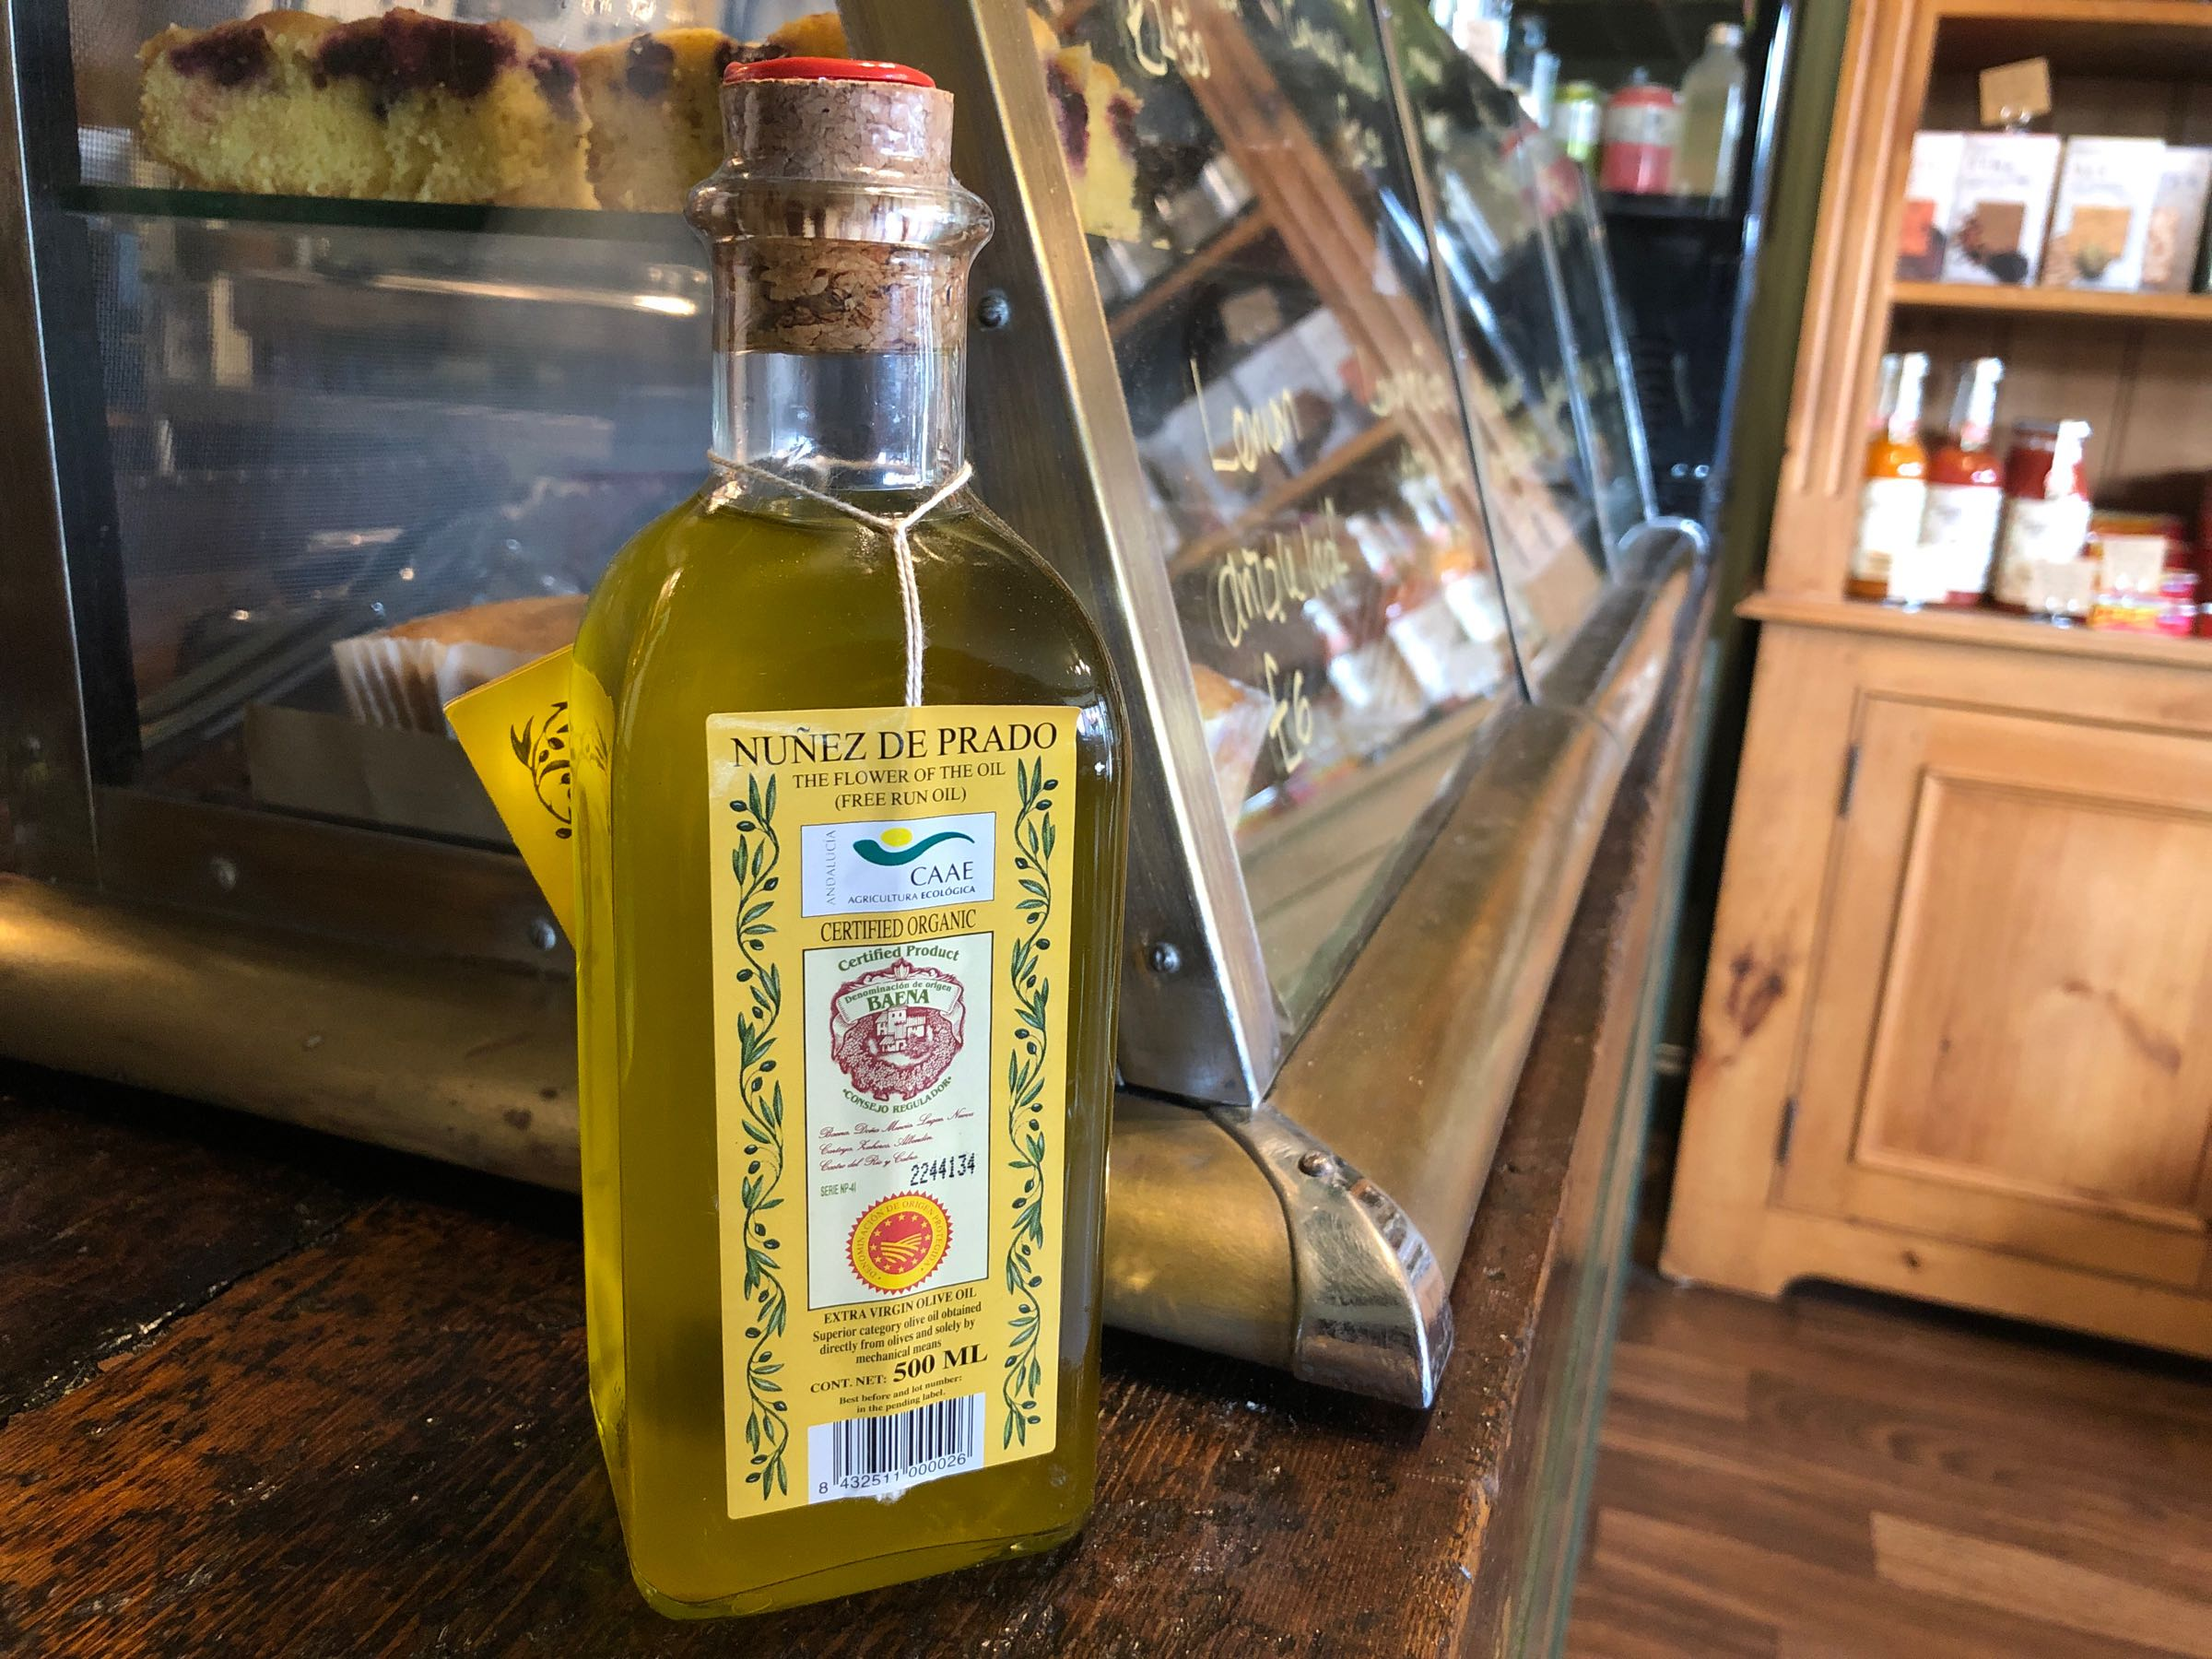 Núñez de Prado organic EVOO DOP, bottle 500ml